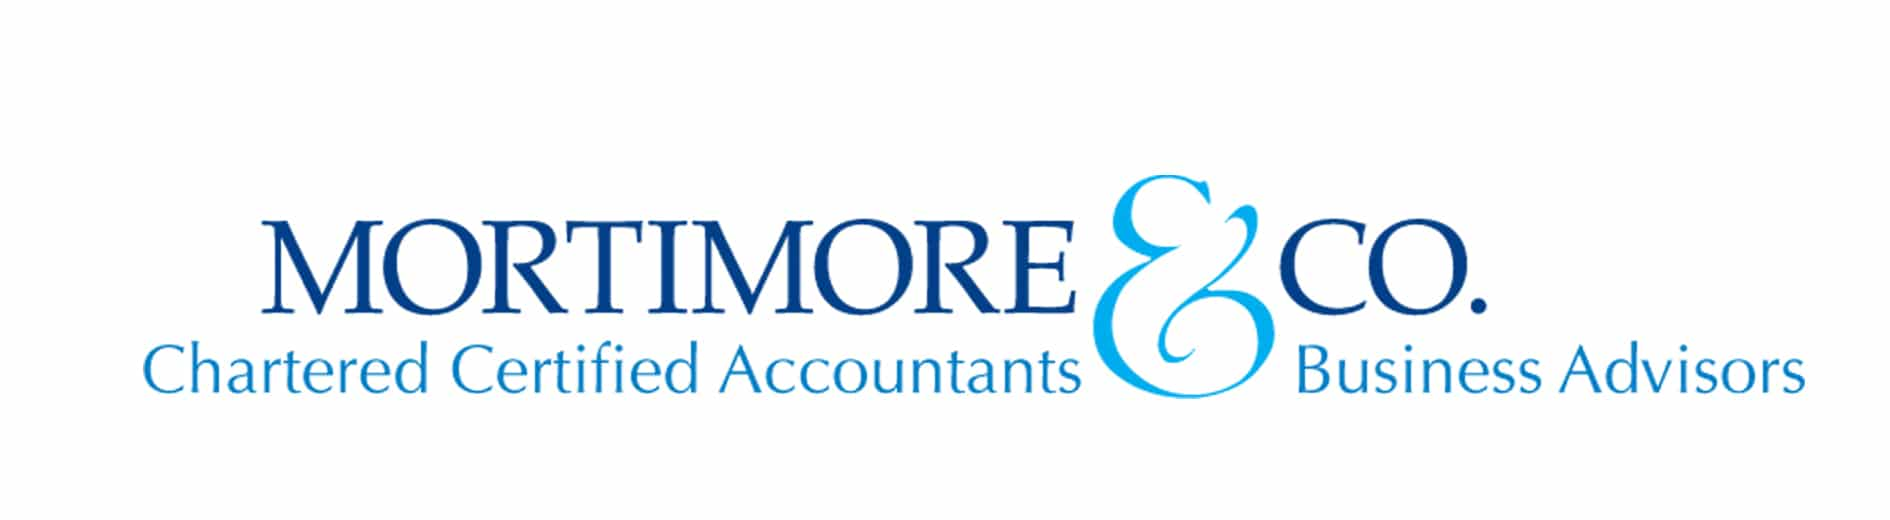 Mortimore & Co Chartered Certified Accountants